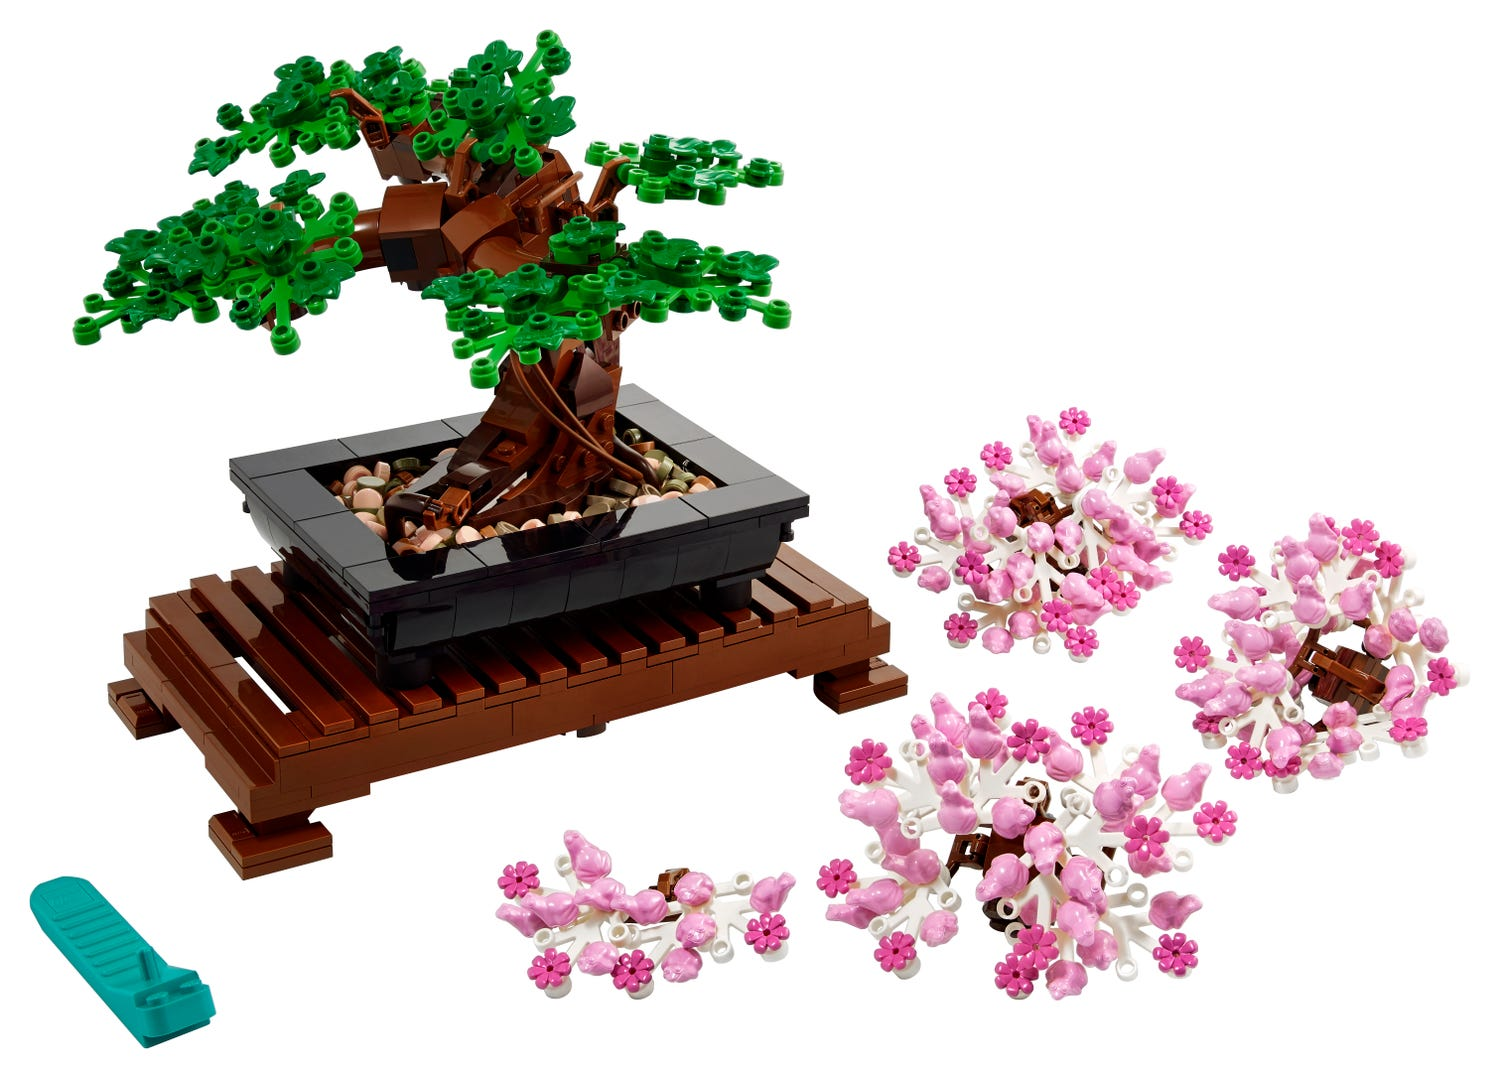 Bonsai Tree 10281 Creator Expert Buy Online At The Official Lego Shop Gb